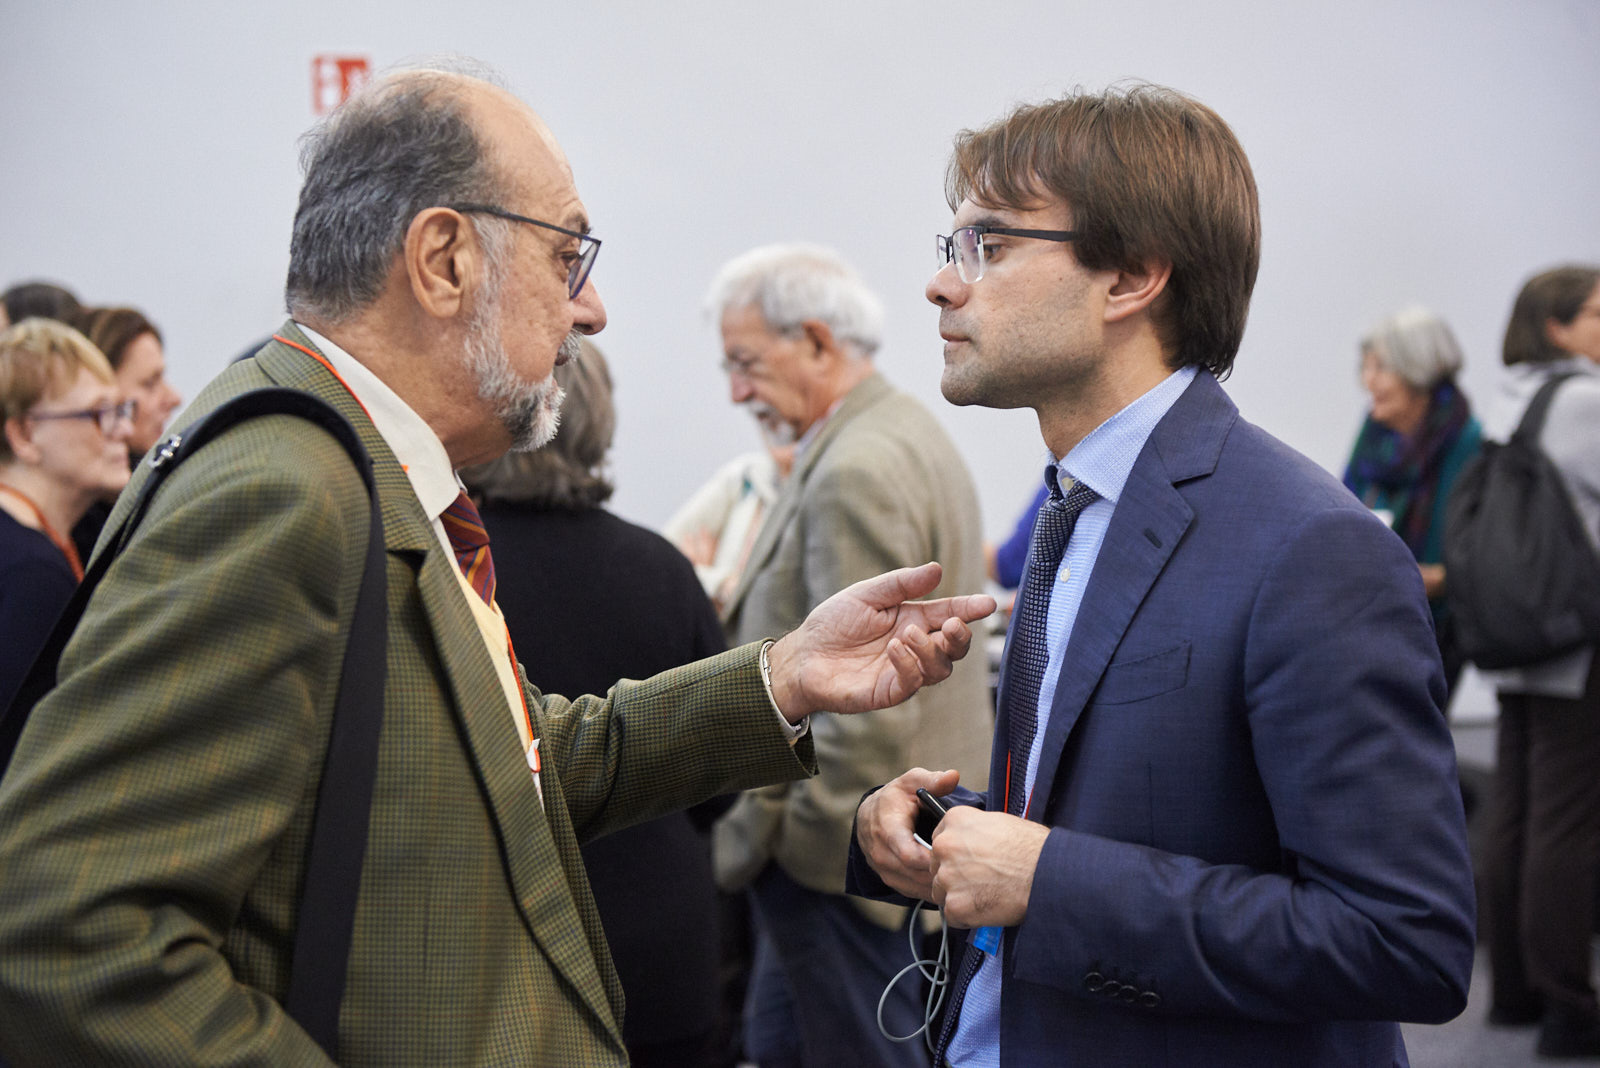 Giorgio Mortara, vice-president UCEI, with Stefano Pasta, journalist and researcher at CREMIT